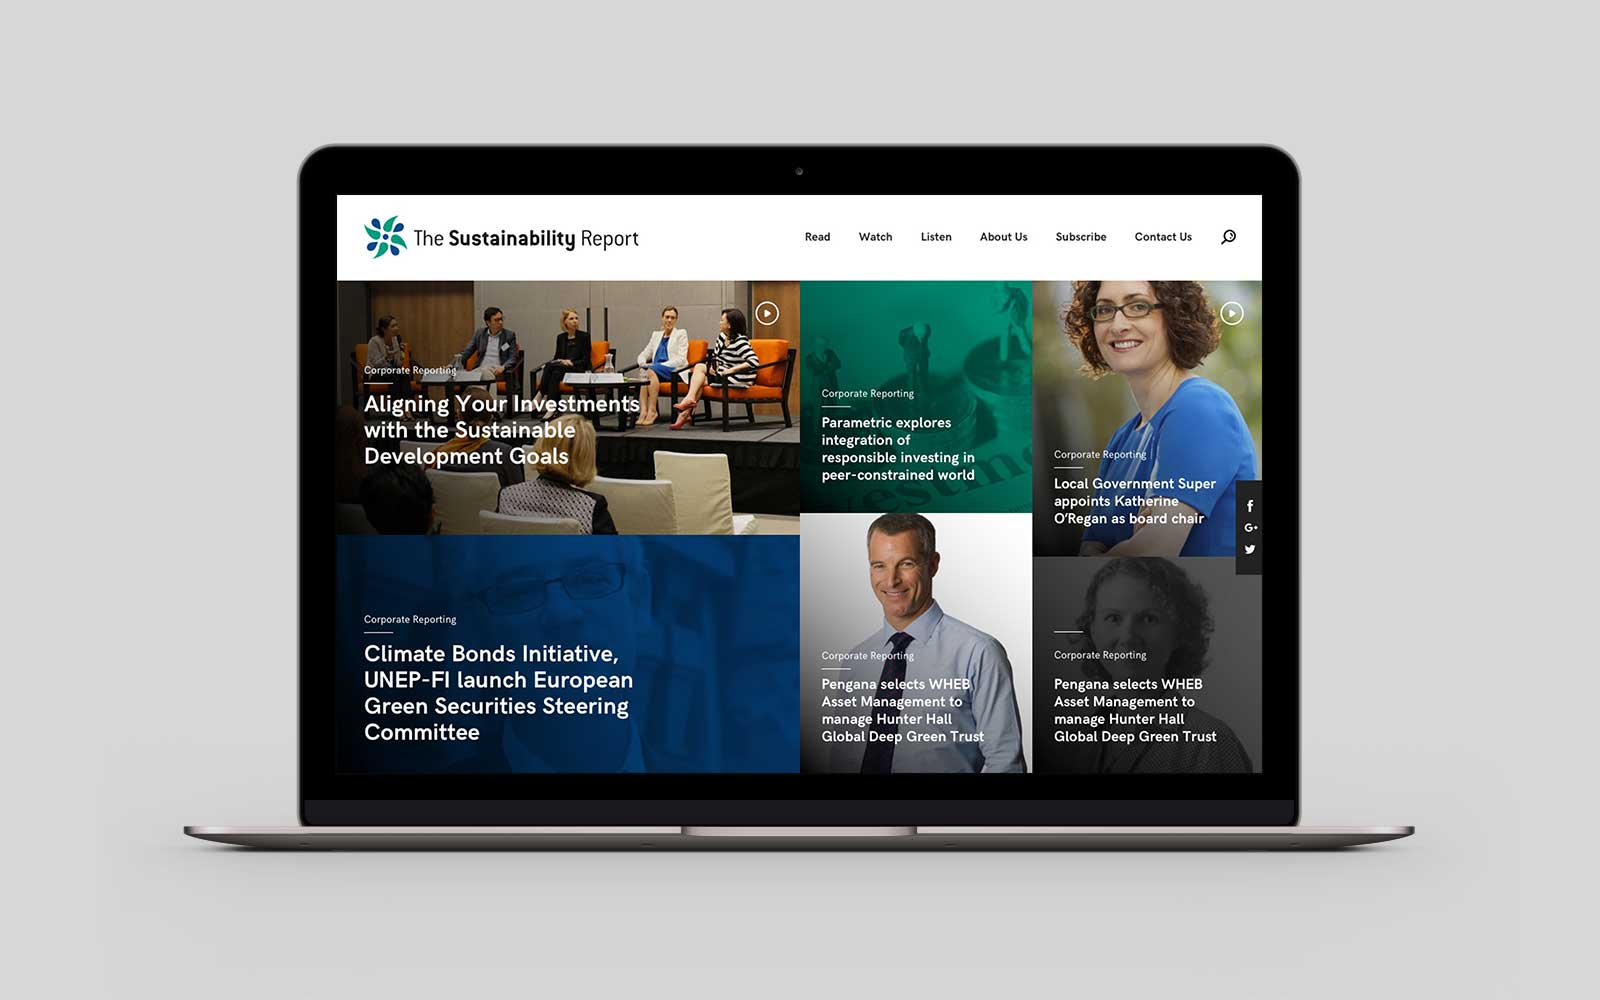 The Sustainability Report homepage desktop design on Macbook